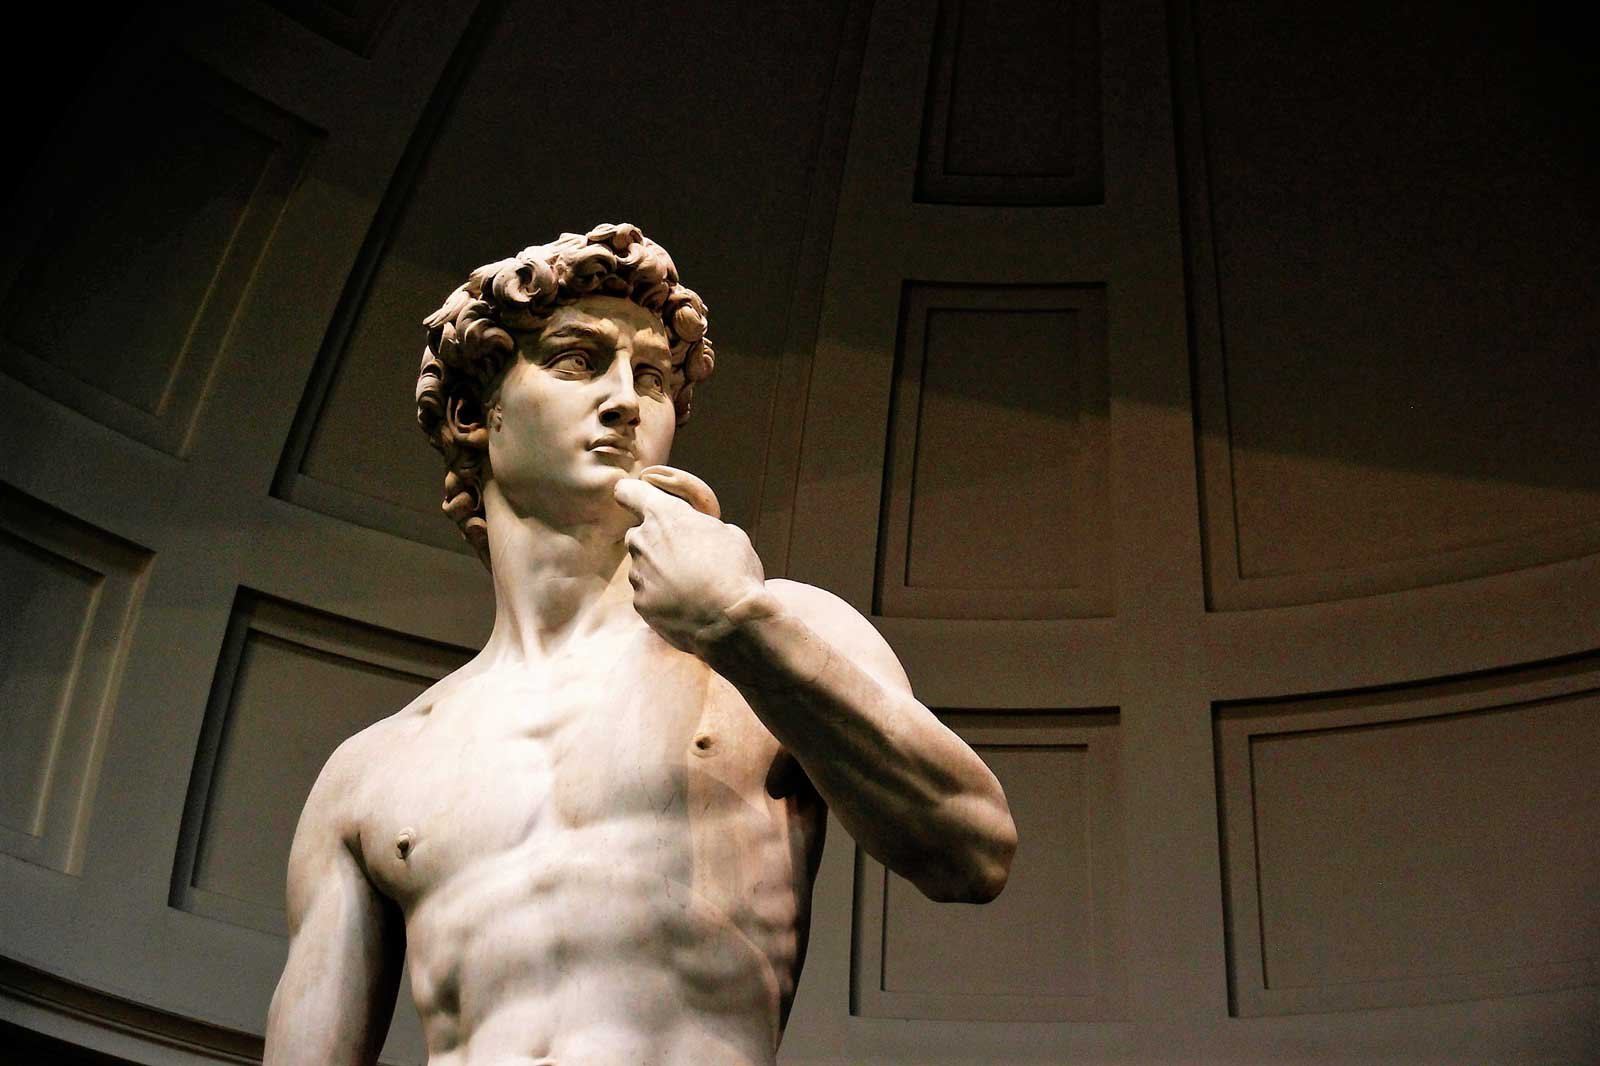 How to watch the Statue of David in Florence